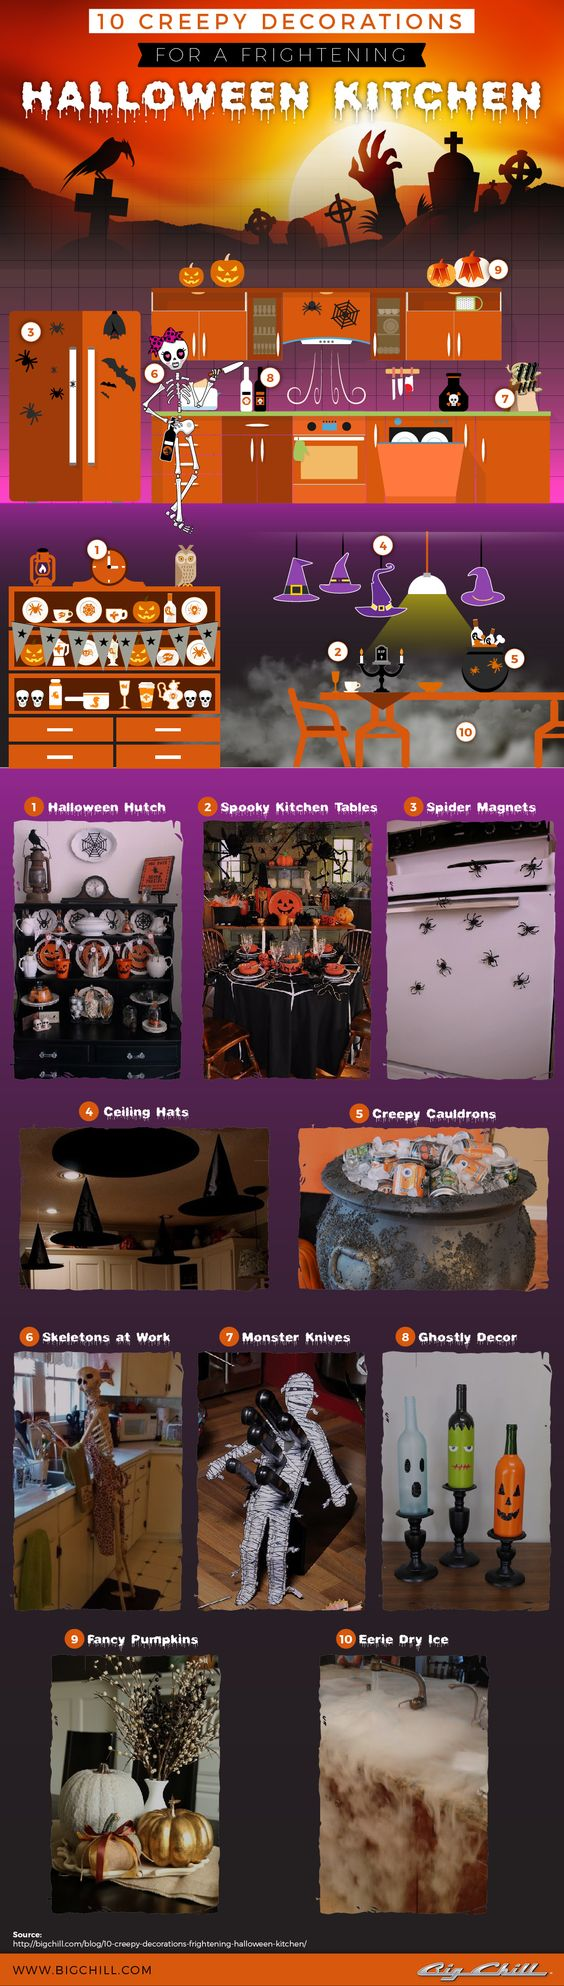 Creepy Decorations for a Frightening Halloween Kitchen Ideas - BigChill.com